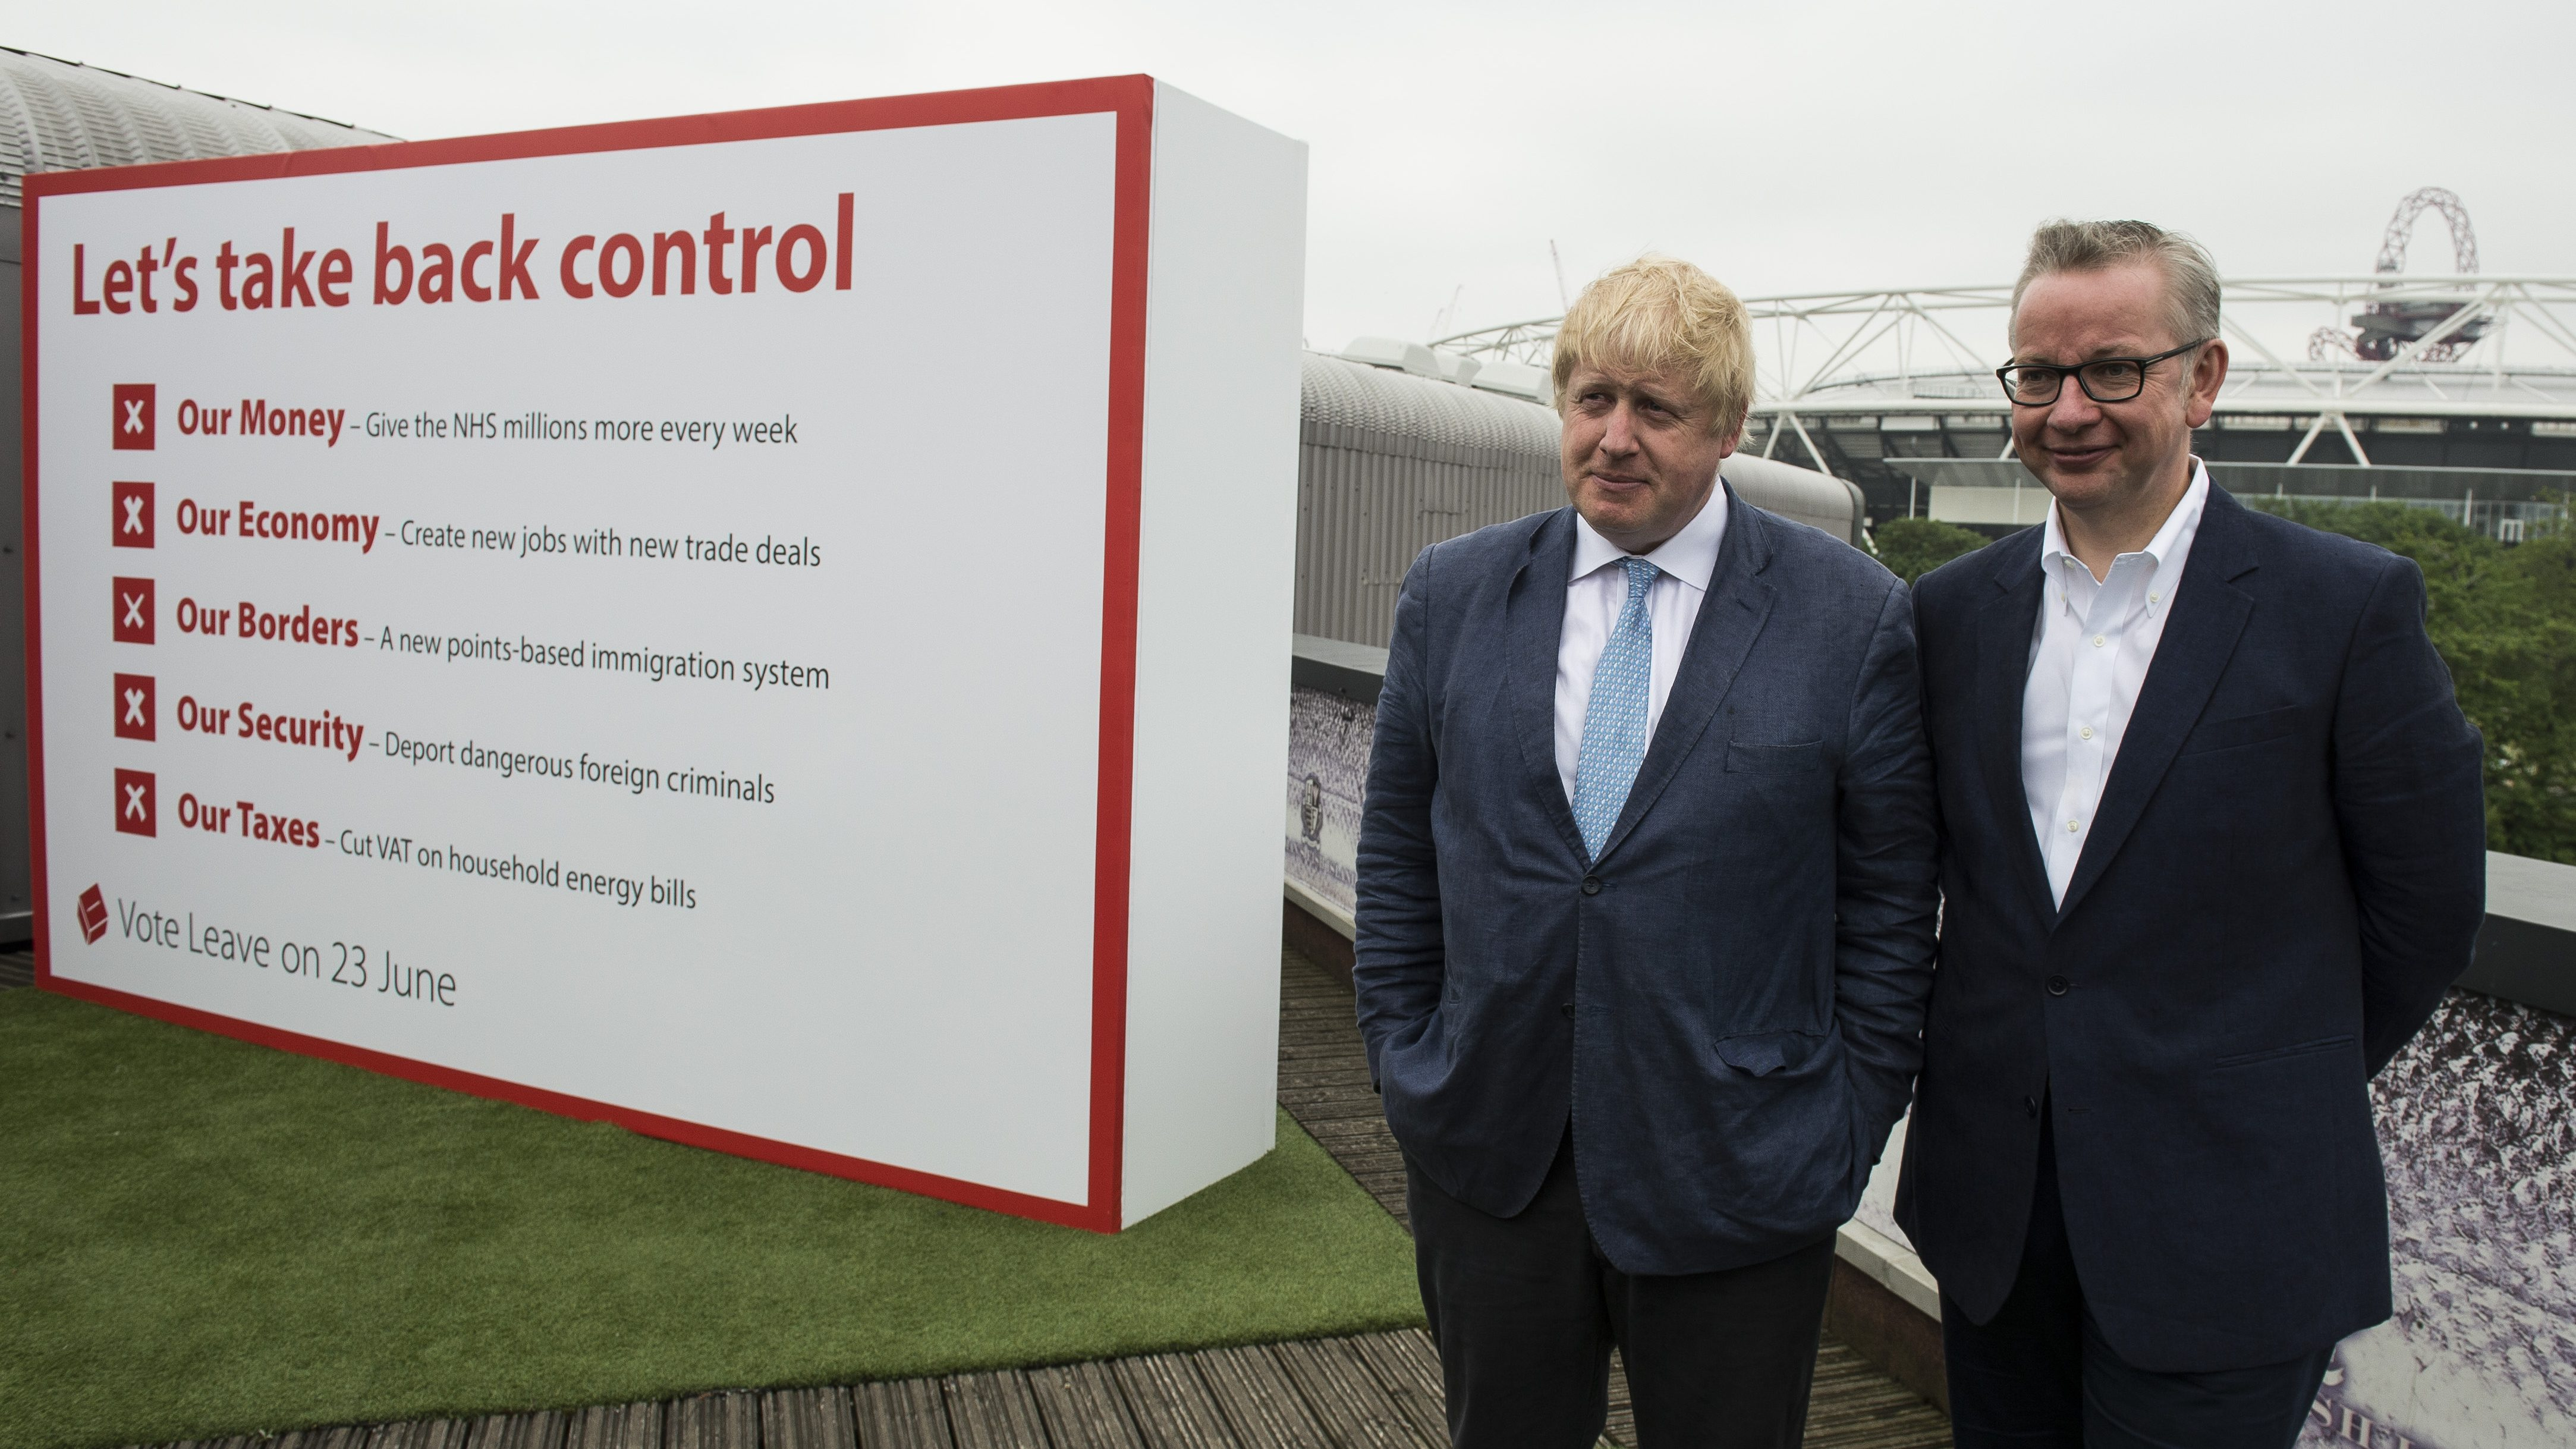 The Electoral Commission is investigating Vote Leave, which was led by cabinet ministers Boris Johnson and Michael Gove.